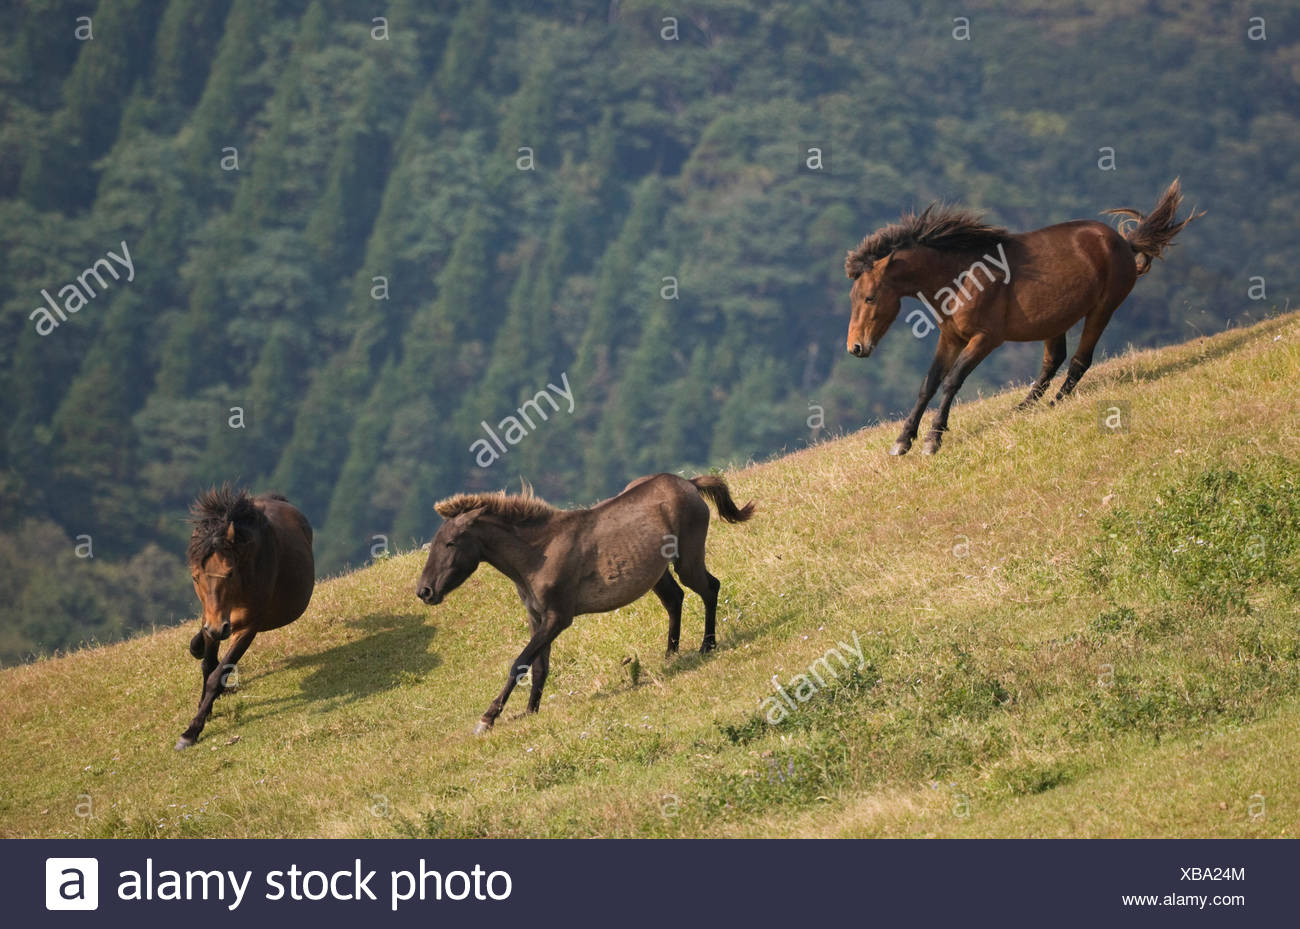 A wild Misaki-uma breeding stallion (right) brings back one of his mares to his band while another breeding stallion (left) charges him away, in the Cape Toi Reserve, Miyazaki Prefecture, Kyushu Island, Japan. - Stock Image